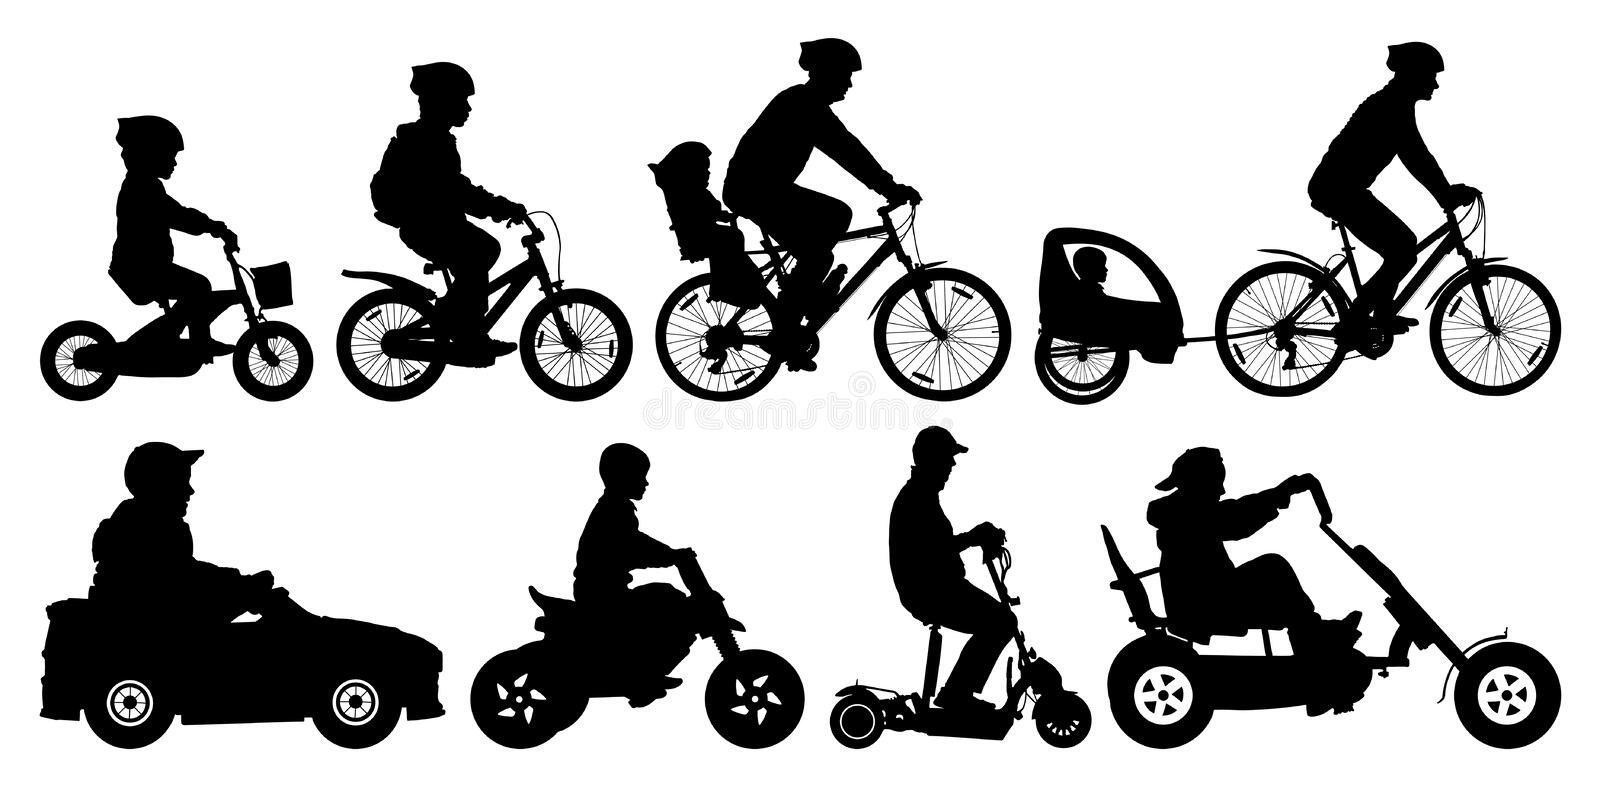 Family with children traveling on bikes. Mountain bike. Cyclist with a child stroller. royalty free illustration